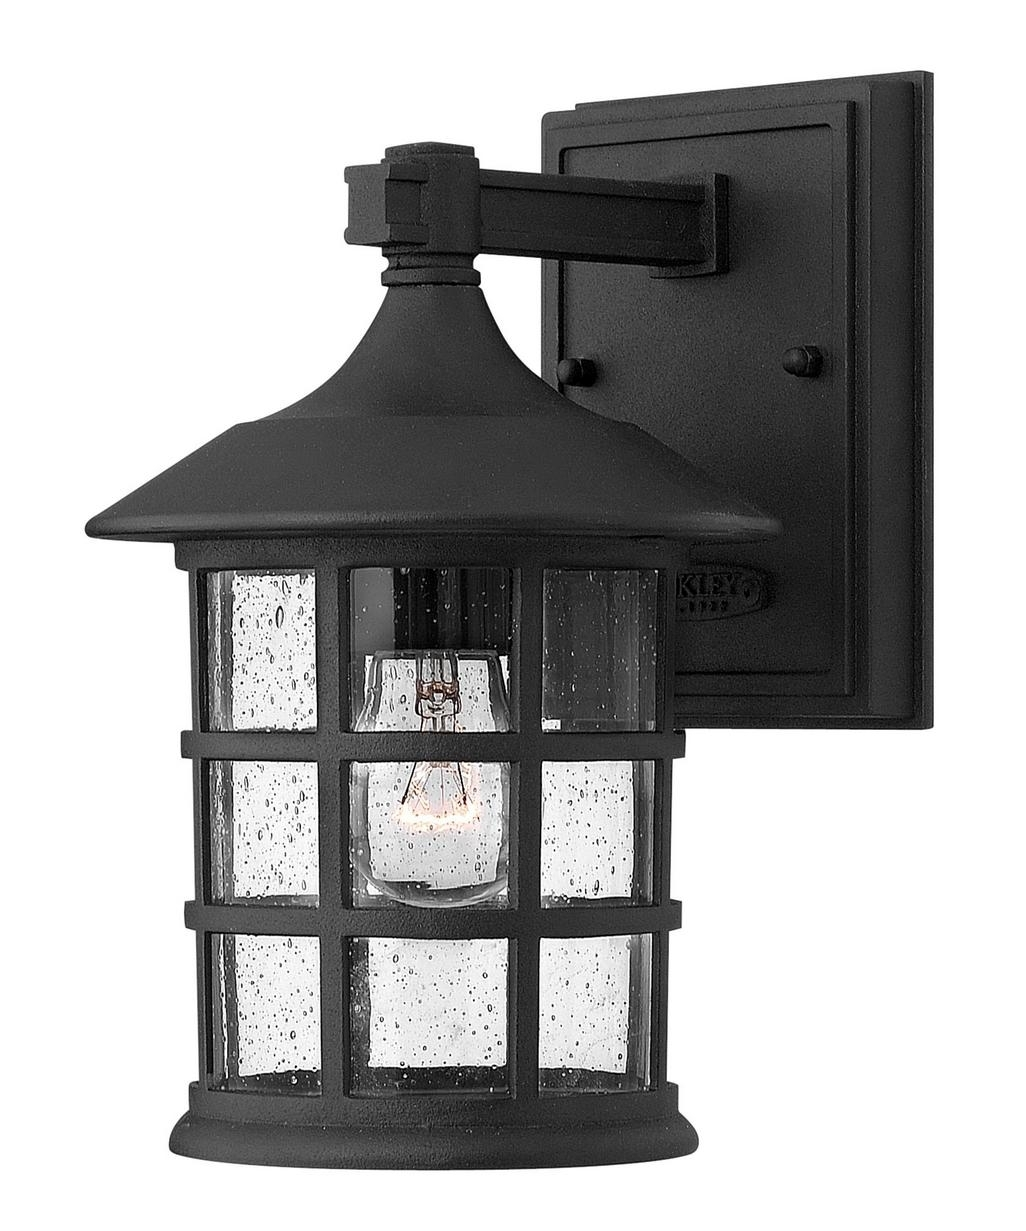 Expensive Outdoor Wall Lighting | House Design Intended For Expensive Outdoor Wall Lighting (View 4 of 15)